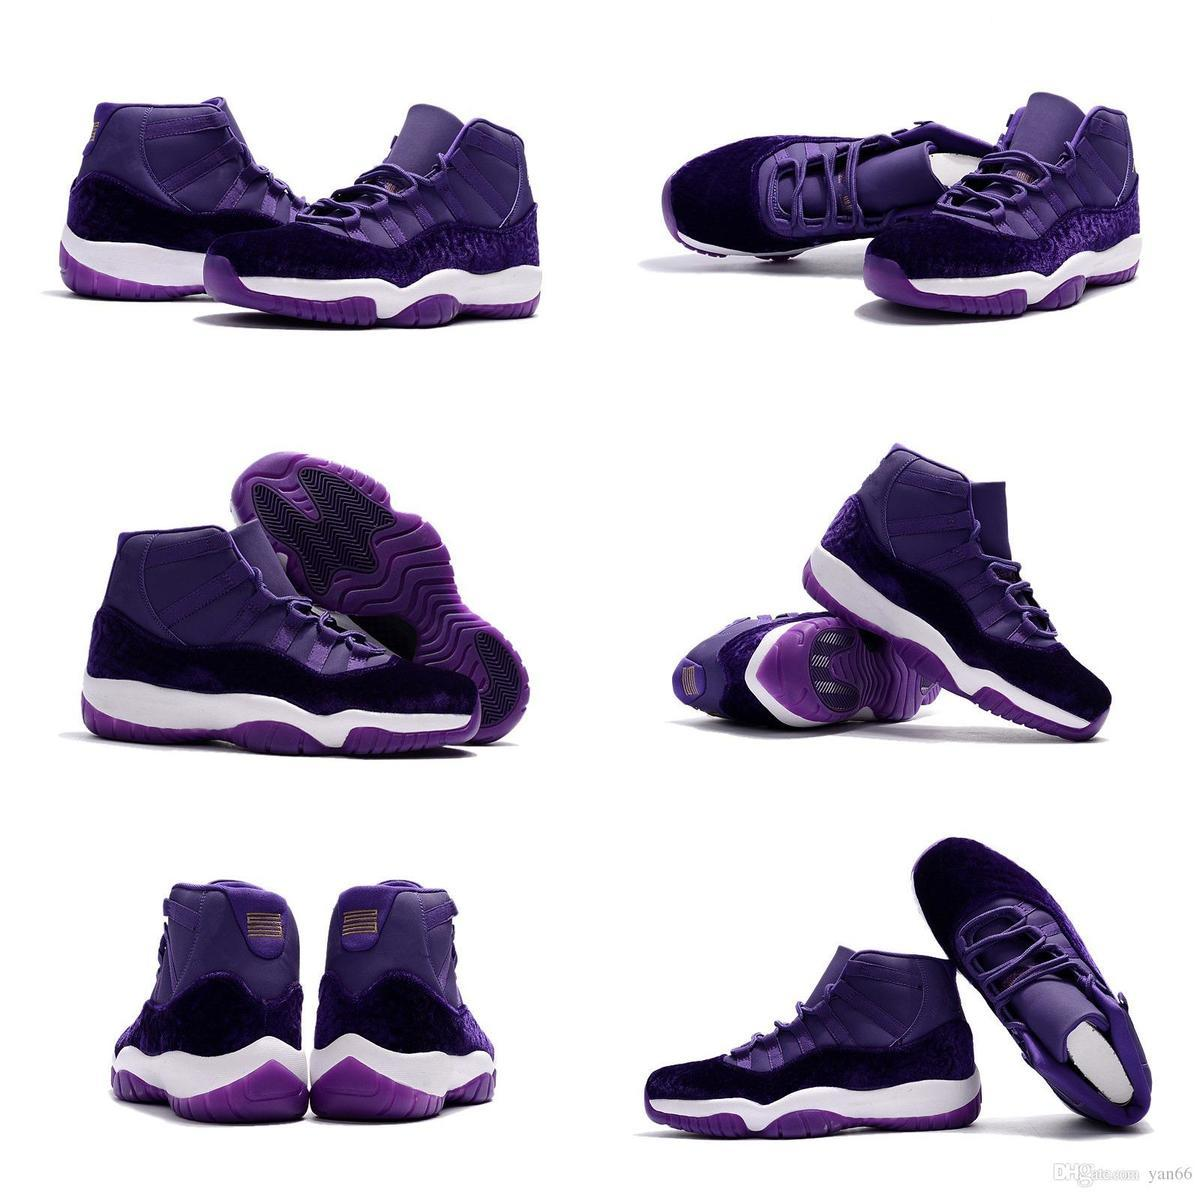 New Men Shoes Hot Purple Shoes With Box Tennis Shoes Ladies Shoes From  Factoryoutlet006 db971217a8cf